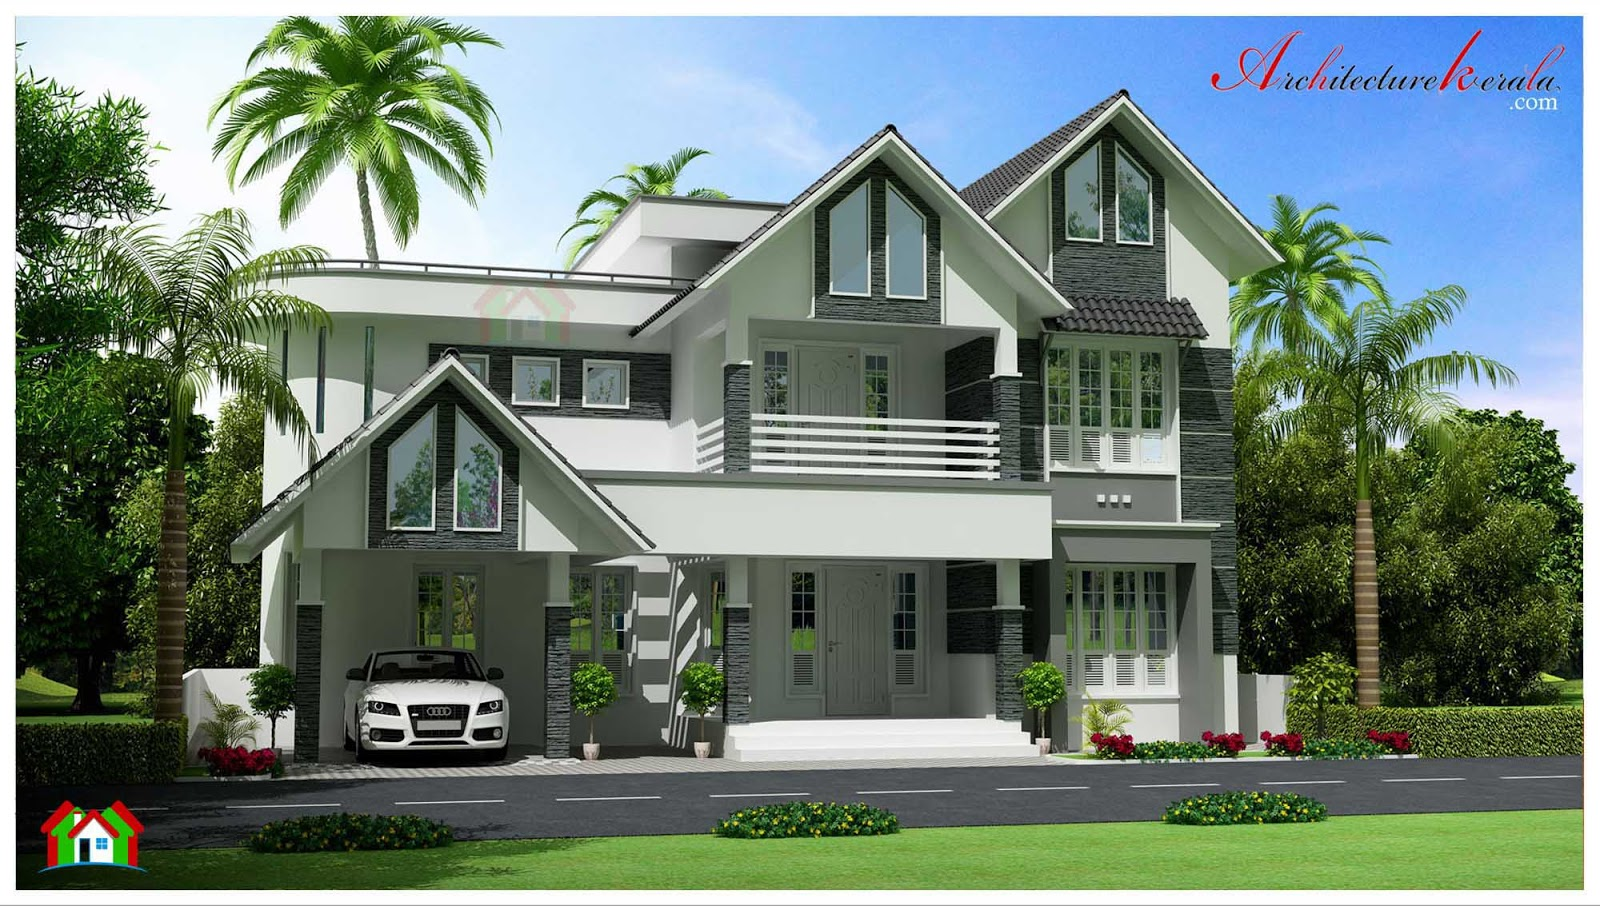 Four bedroom kerala house elevation architecture kerala for 4 bedroom kerala house plans and elevations